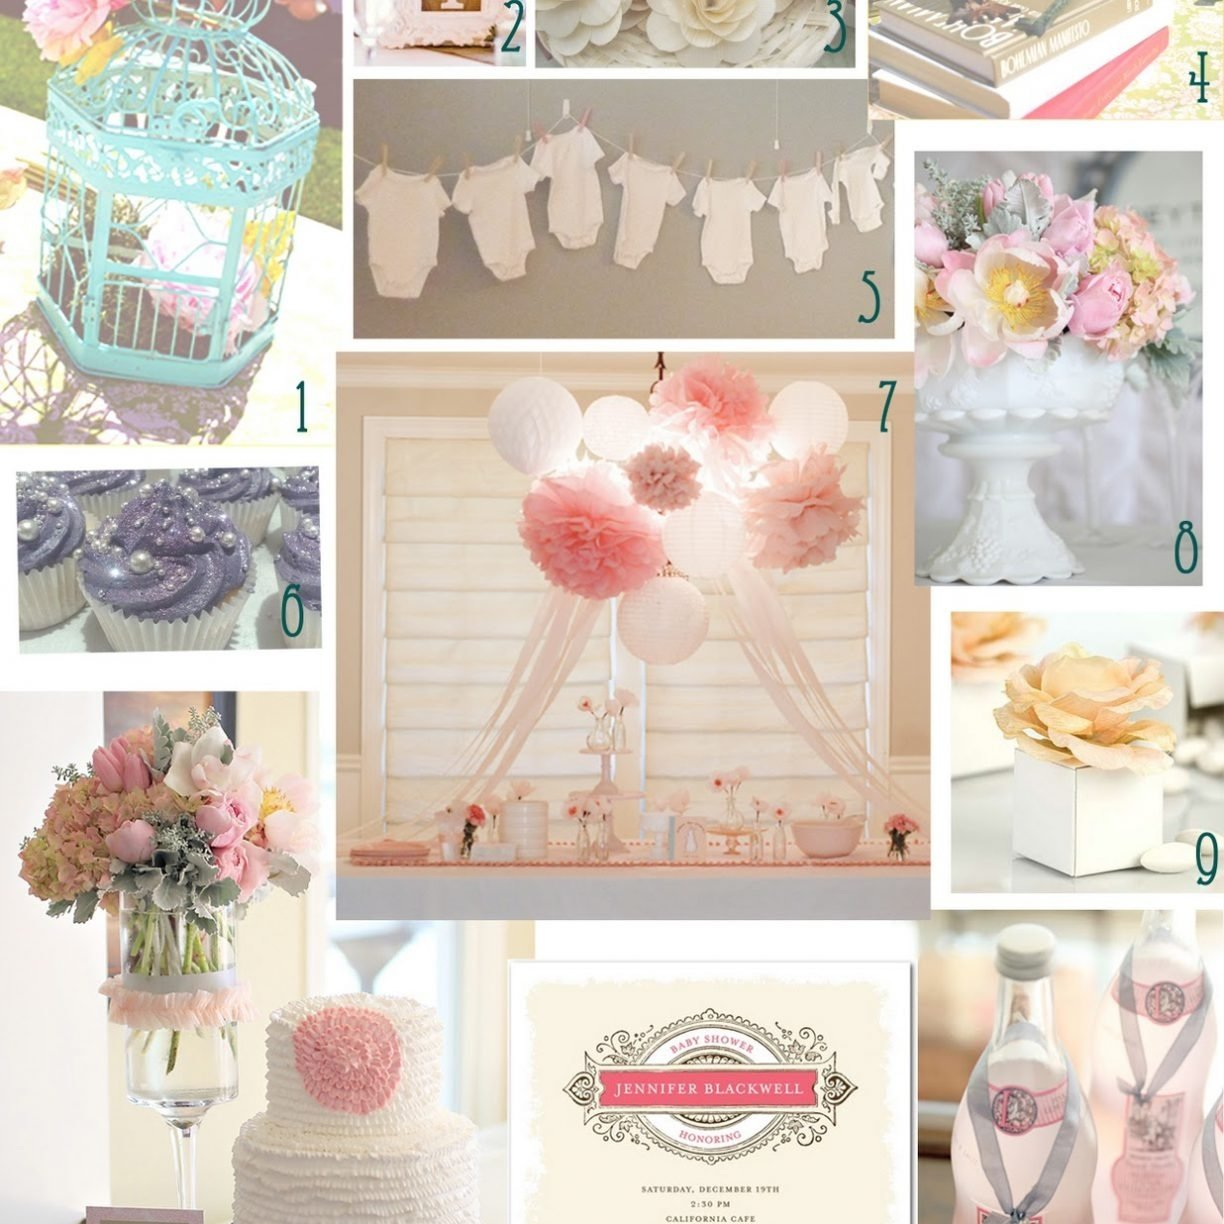 10 Famous Baby Shower Theme Ideas For A Girl girl baby shower theme supplies diy favors ideas themes tea party 2020